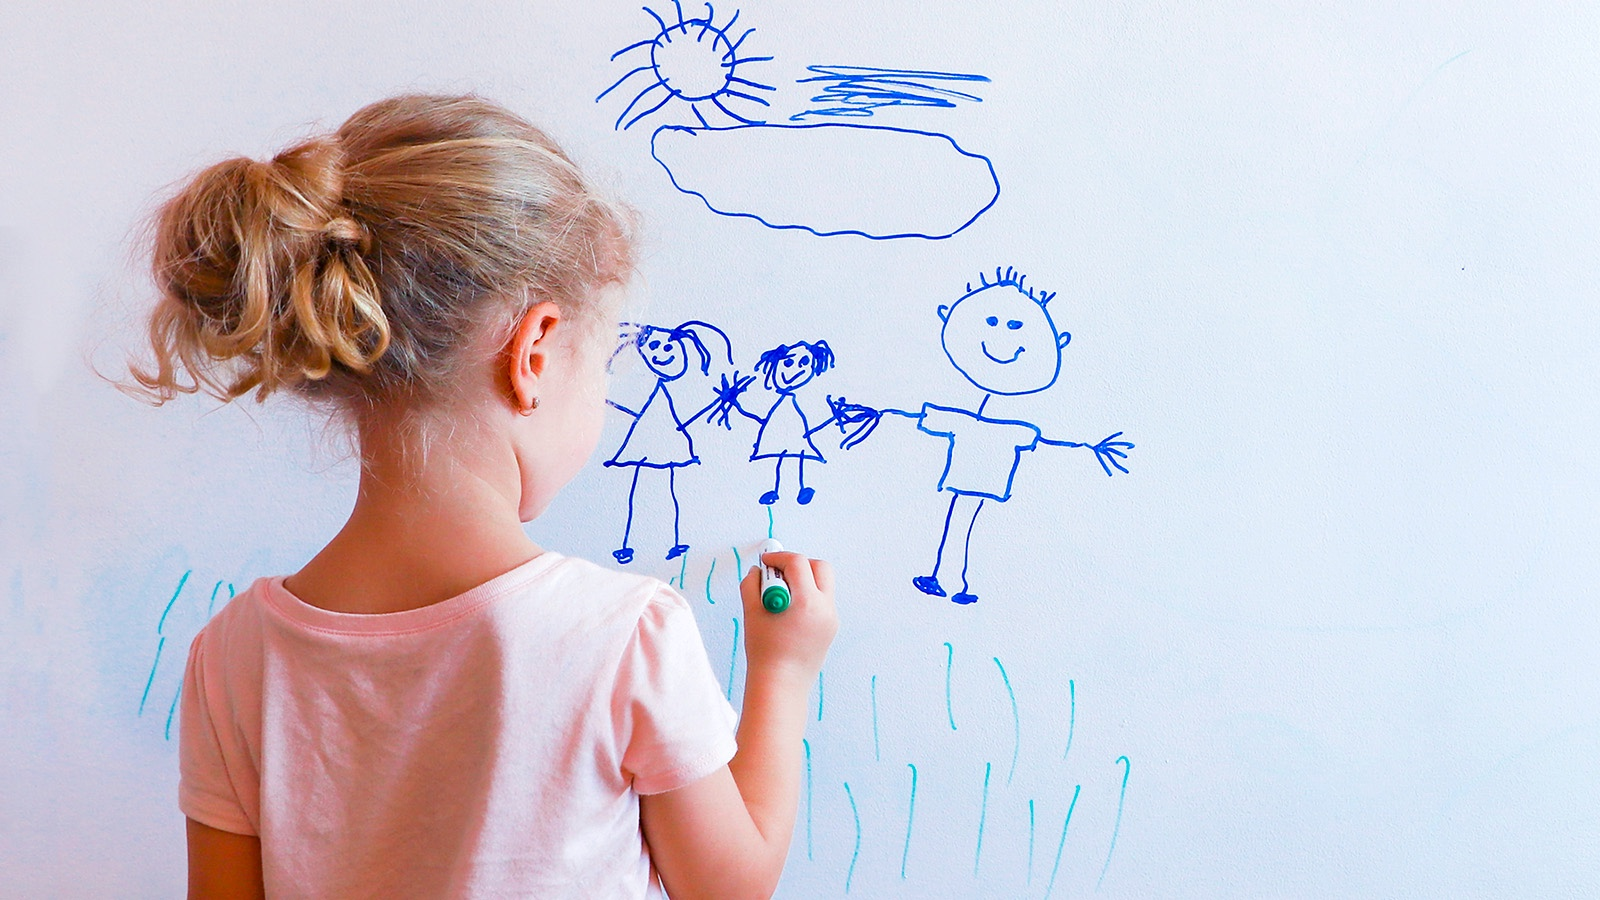 Girl drawing pictionary word on whiteboard